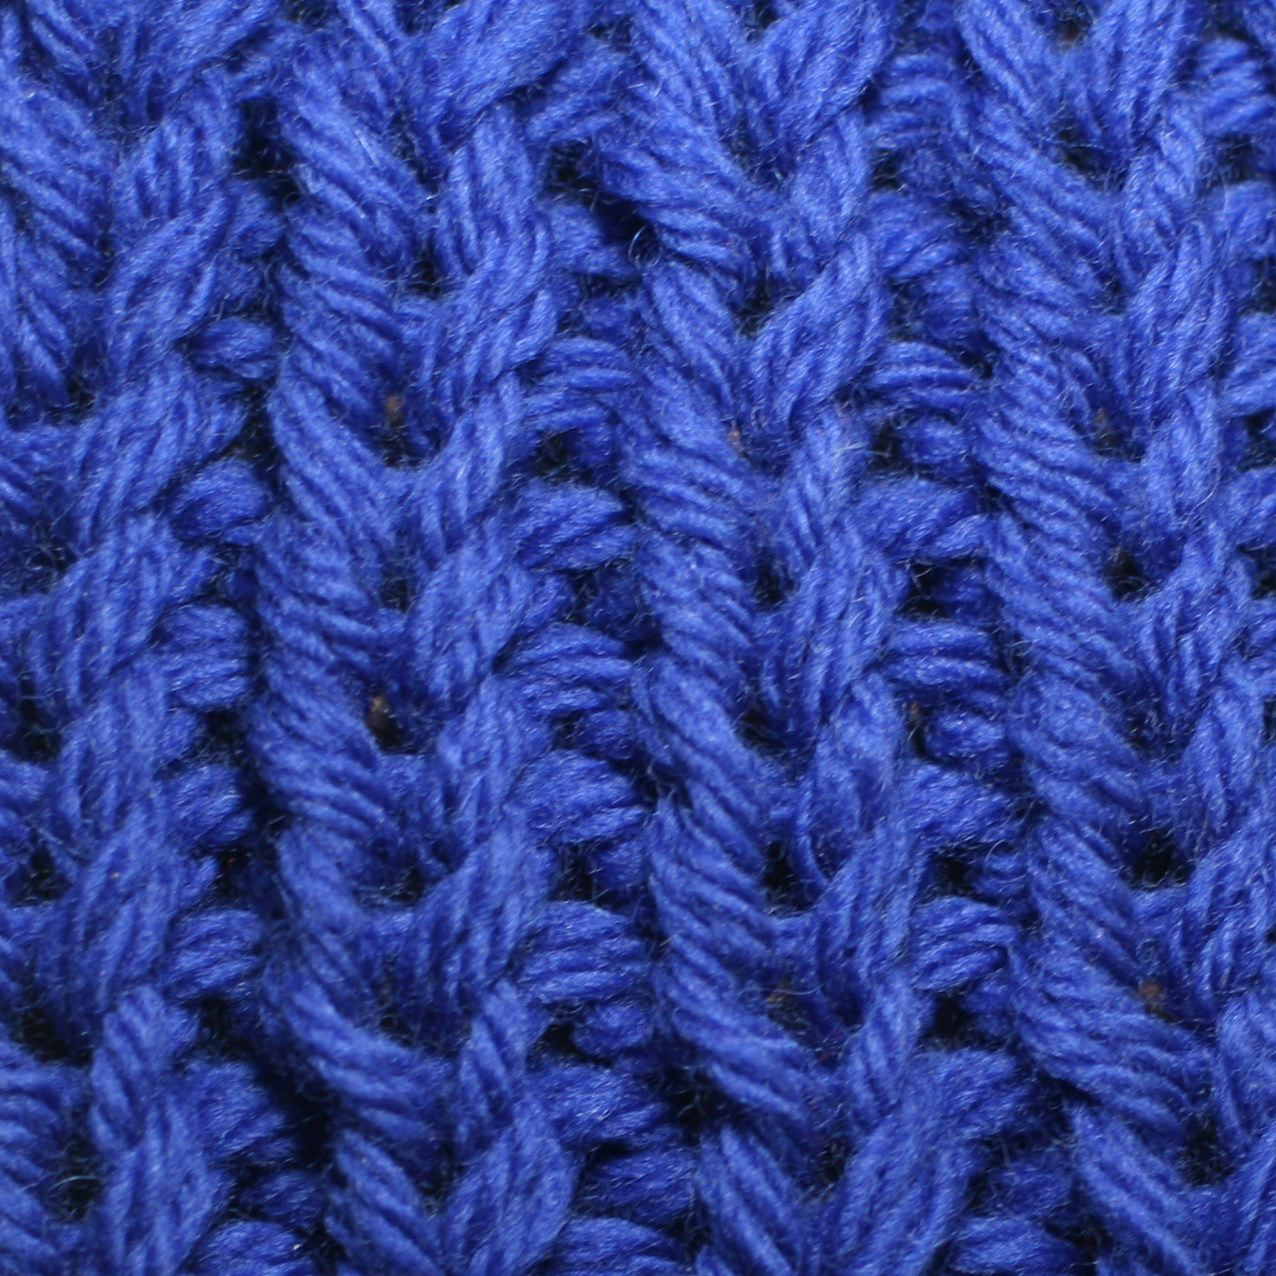 1000+ images about Weft knit on Pinterest Knits, Science articles and Handm...